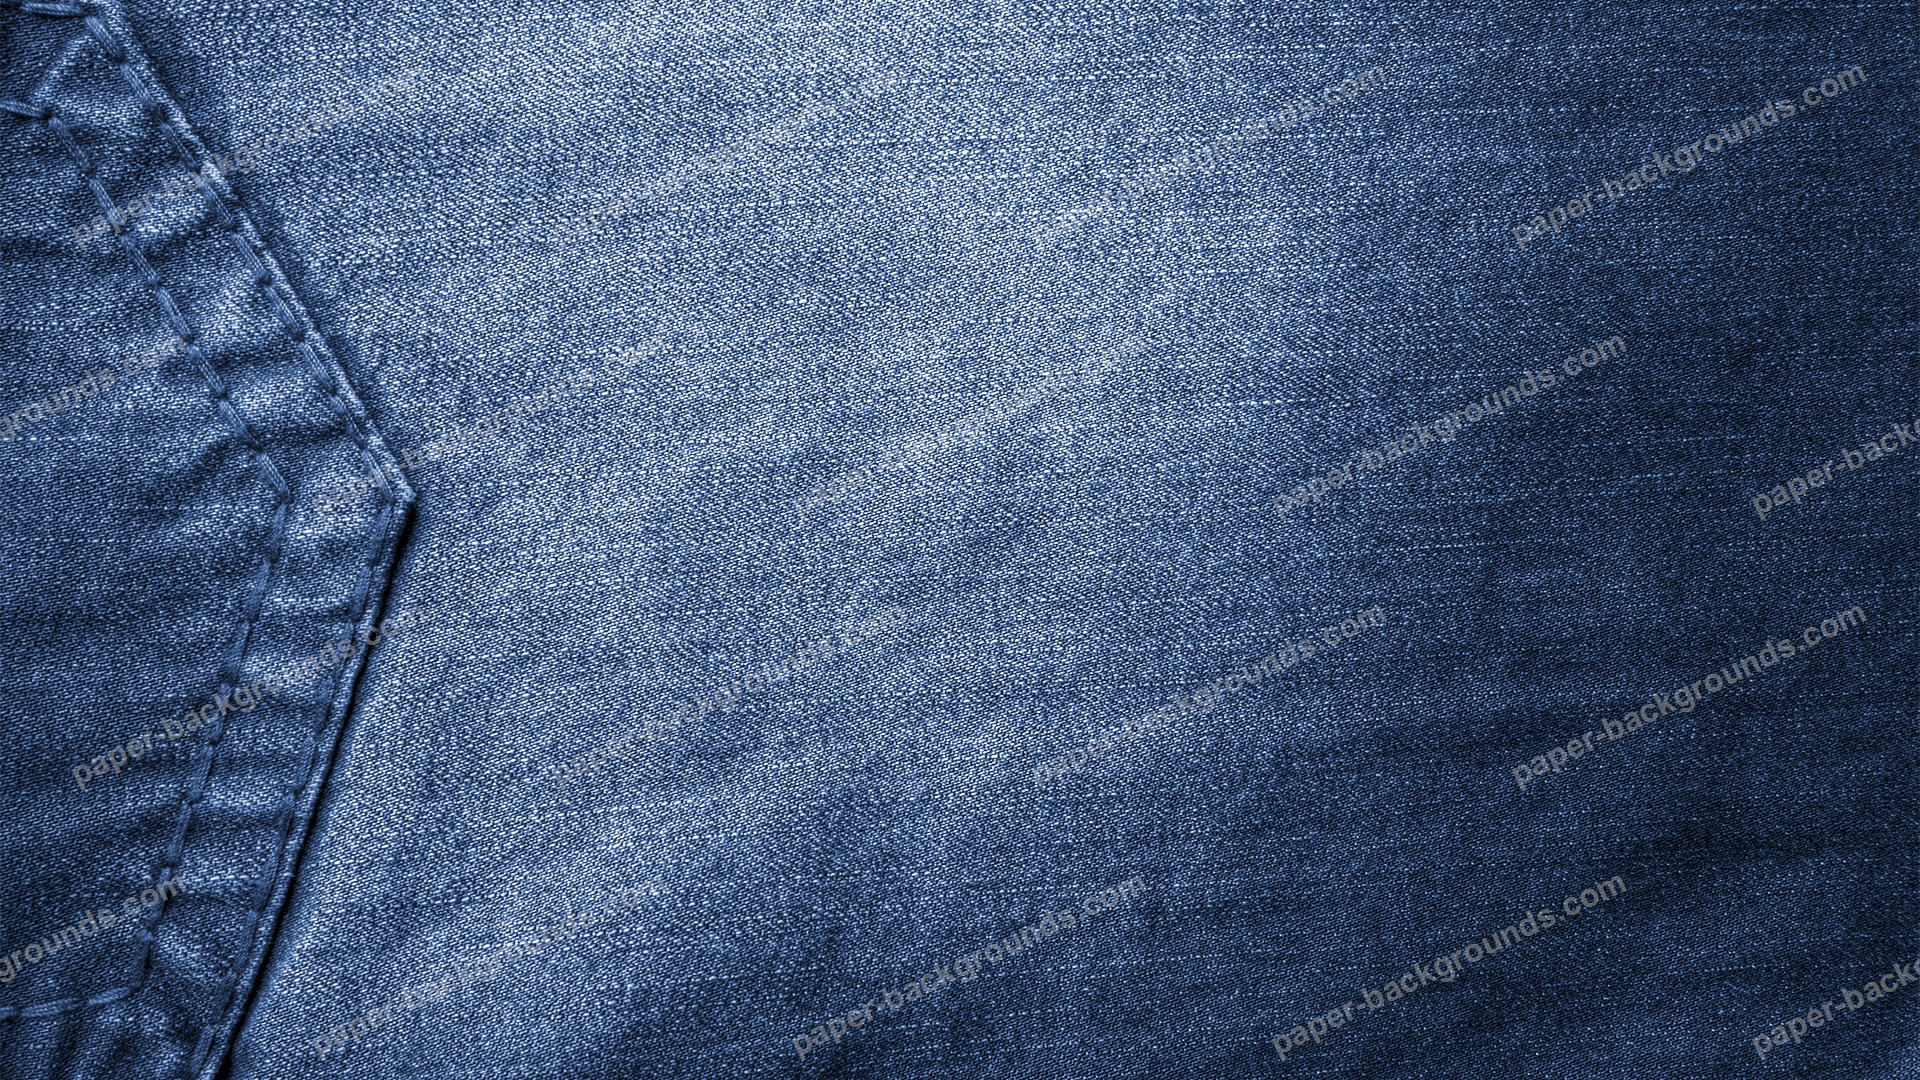 paper backgrounds vintage blue jeans with pocket background